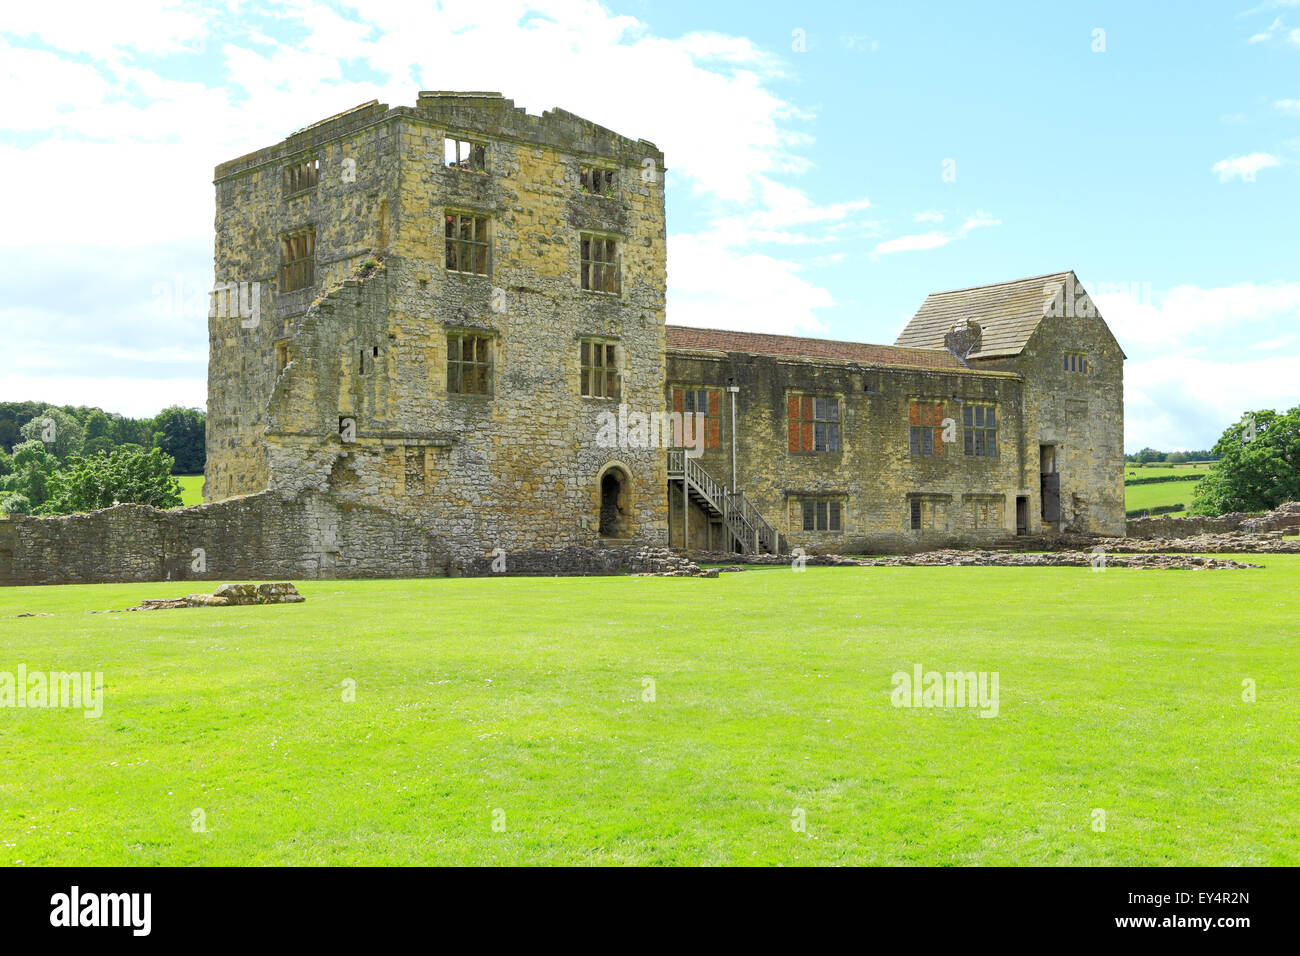 Helmsley Castle, 16th century residential buildings, Yorkshire England UK English castles - Stock Image